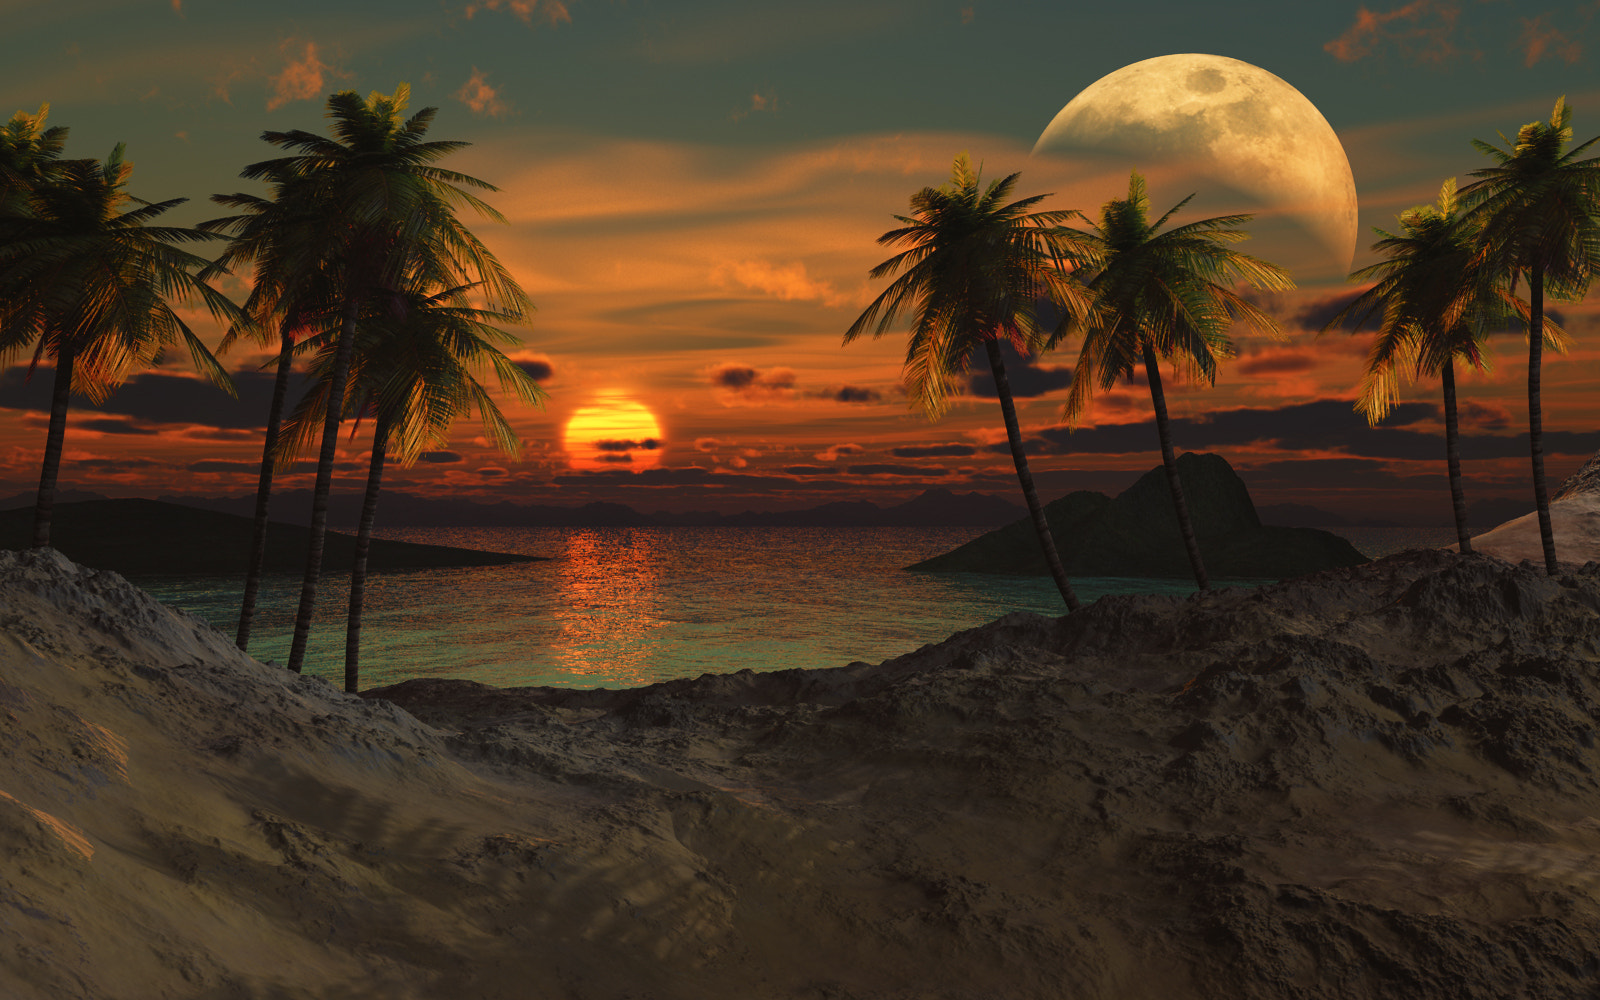 Photograph 3D New World by George Bloise on 500px